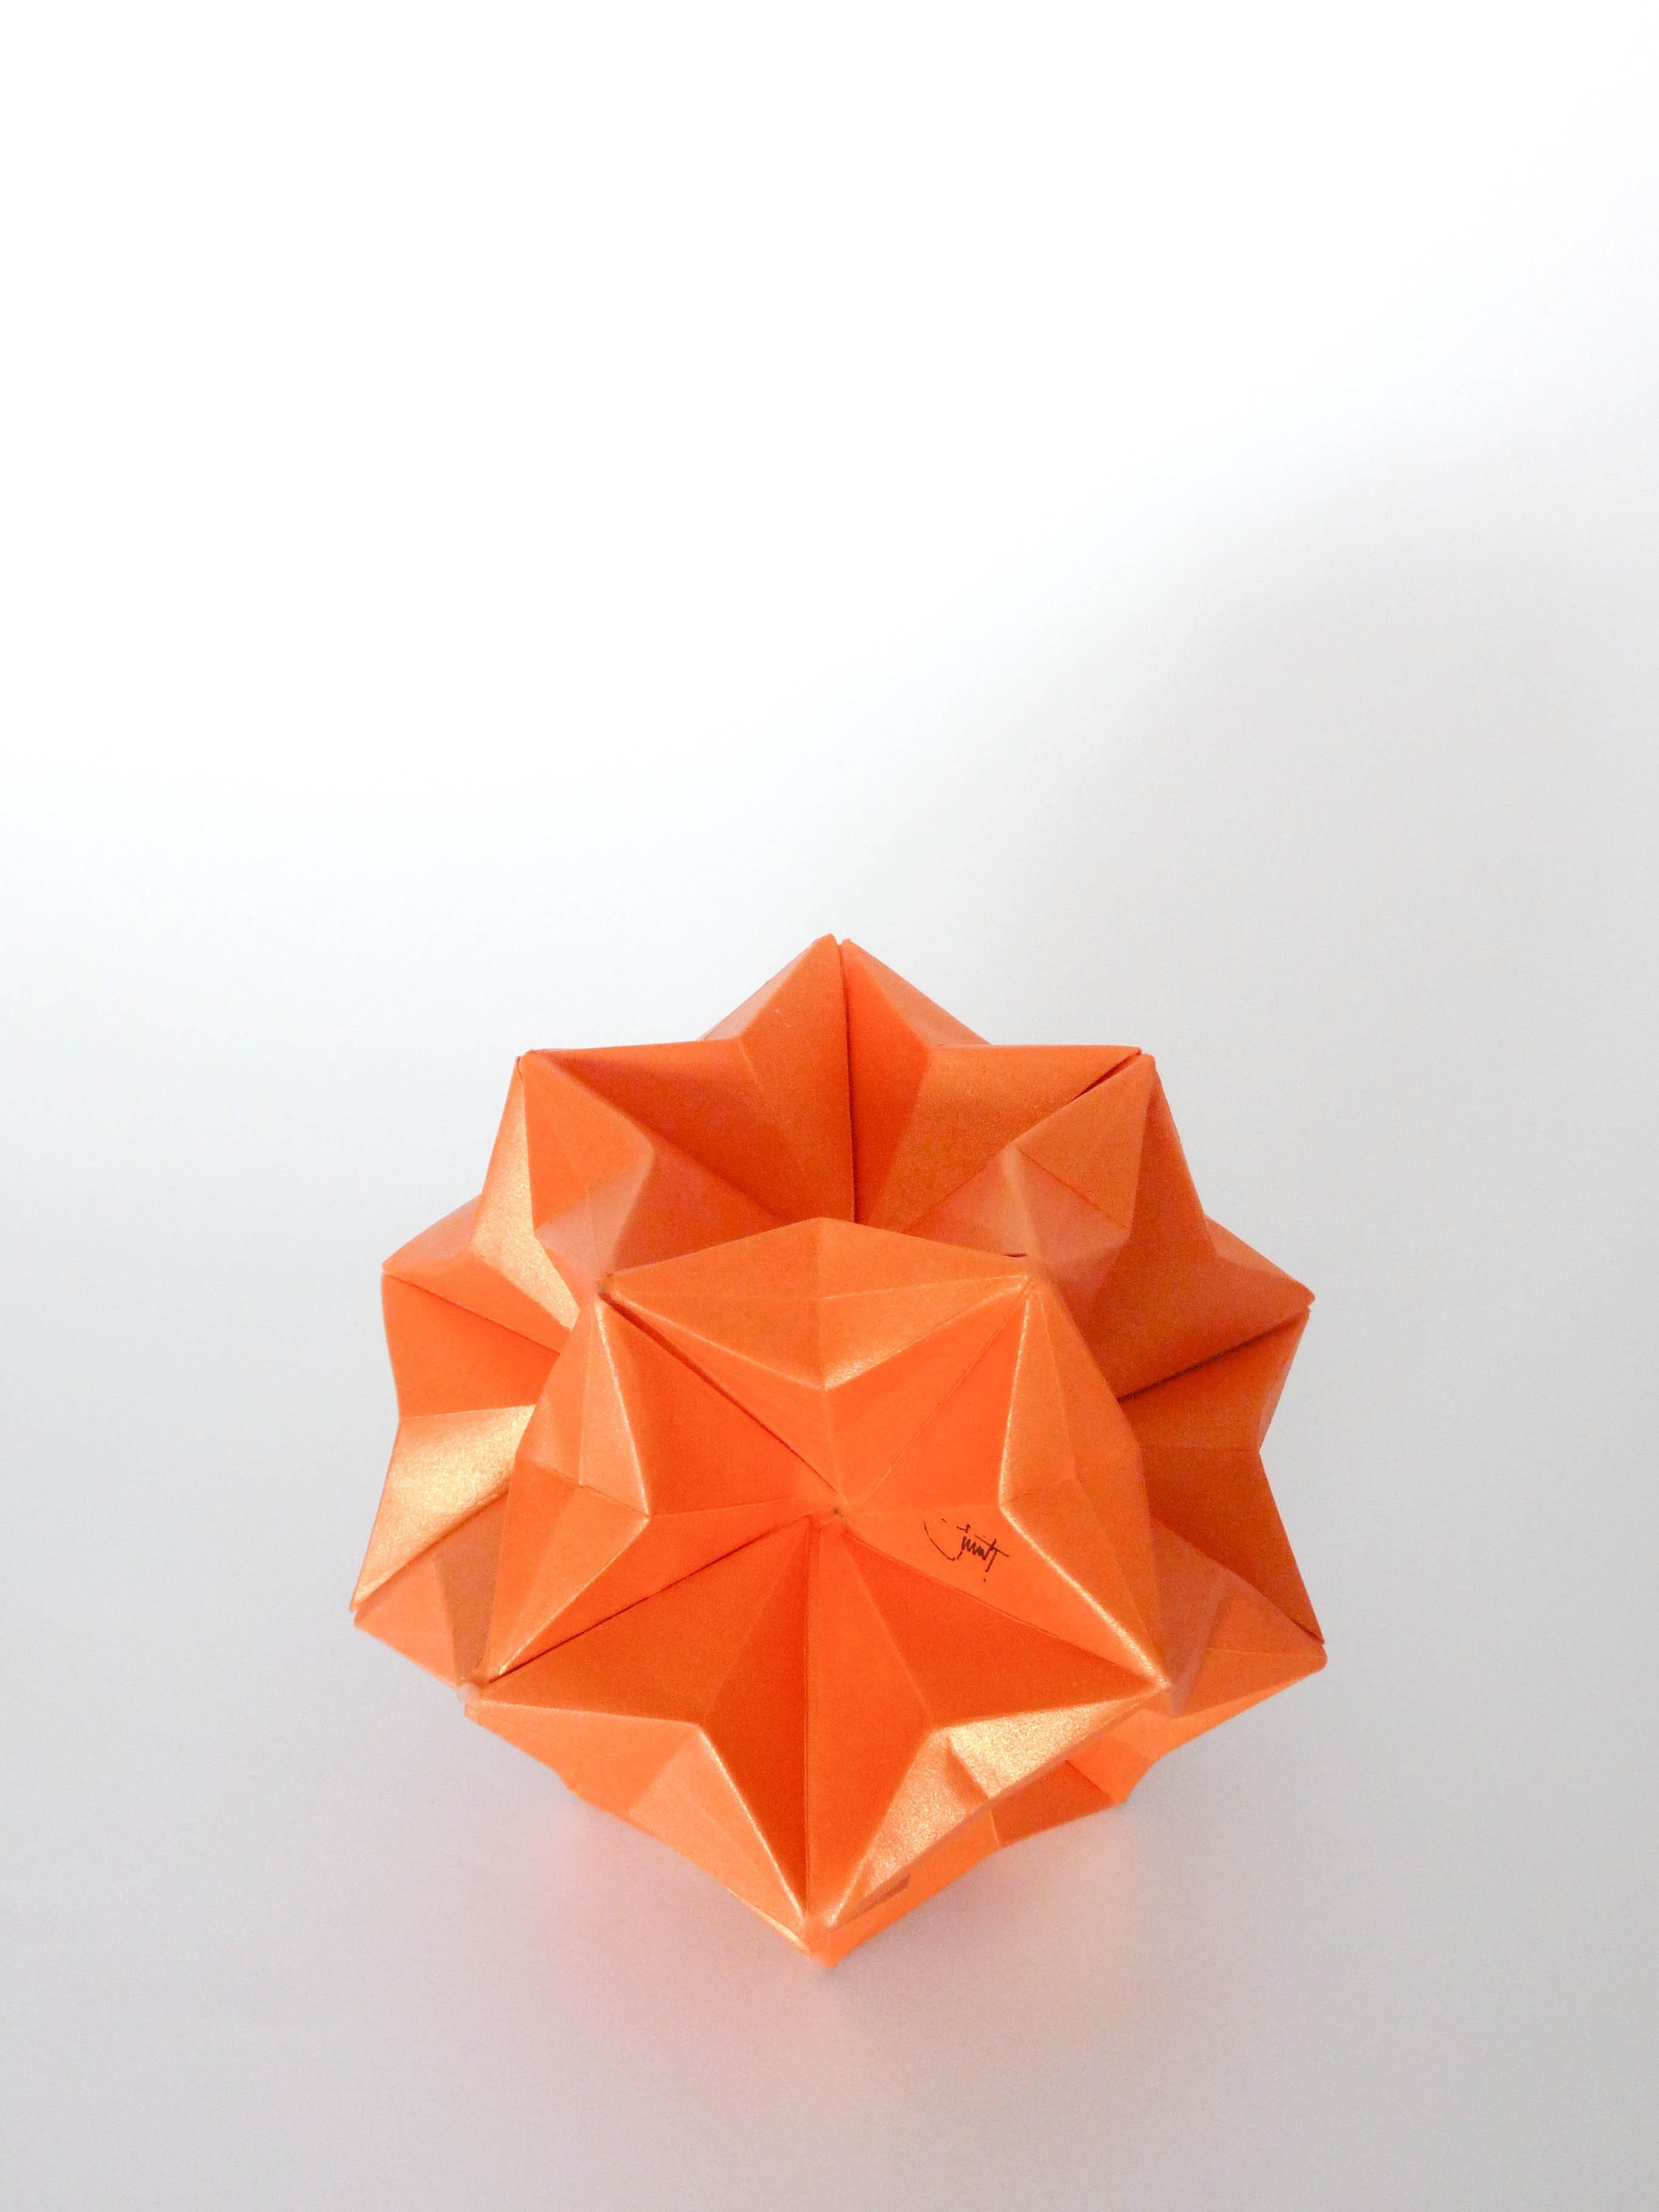 Kusudama Estrella Origami Diagrams Origami Crafts Origami And Kirigami